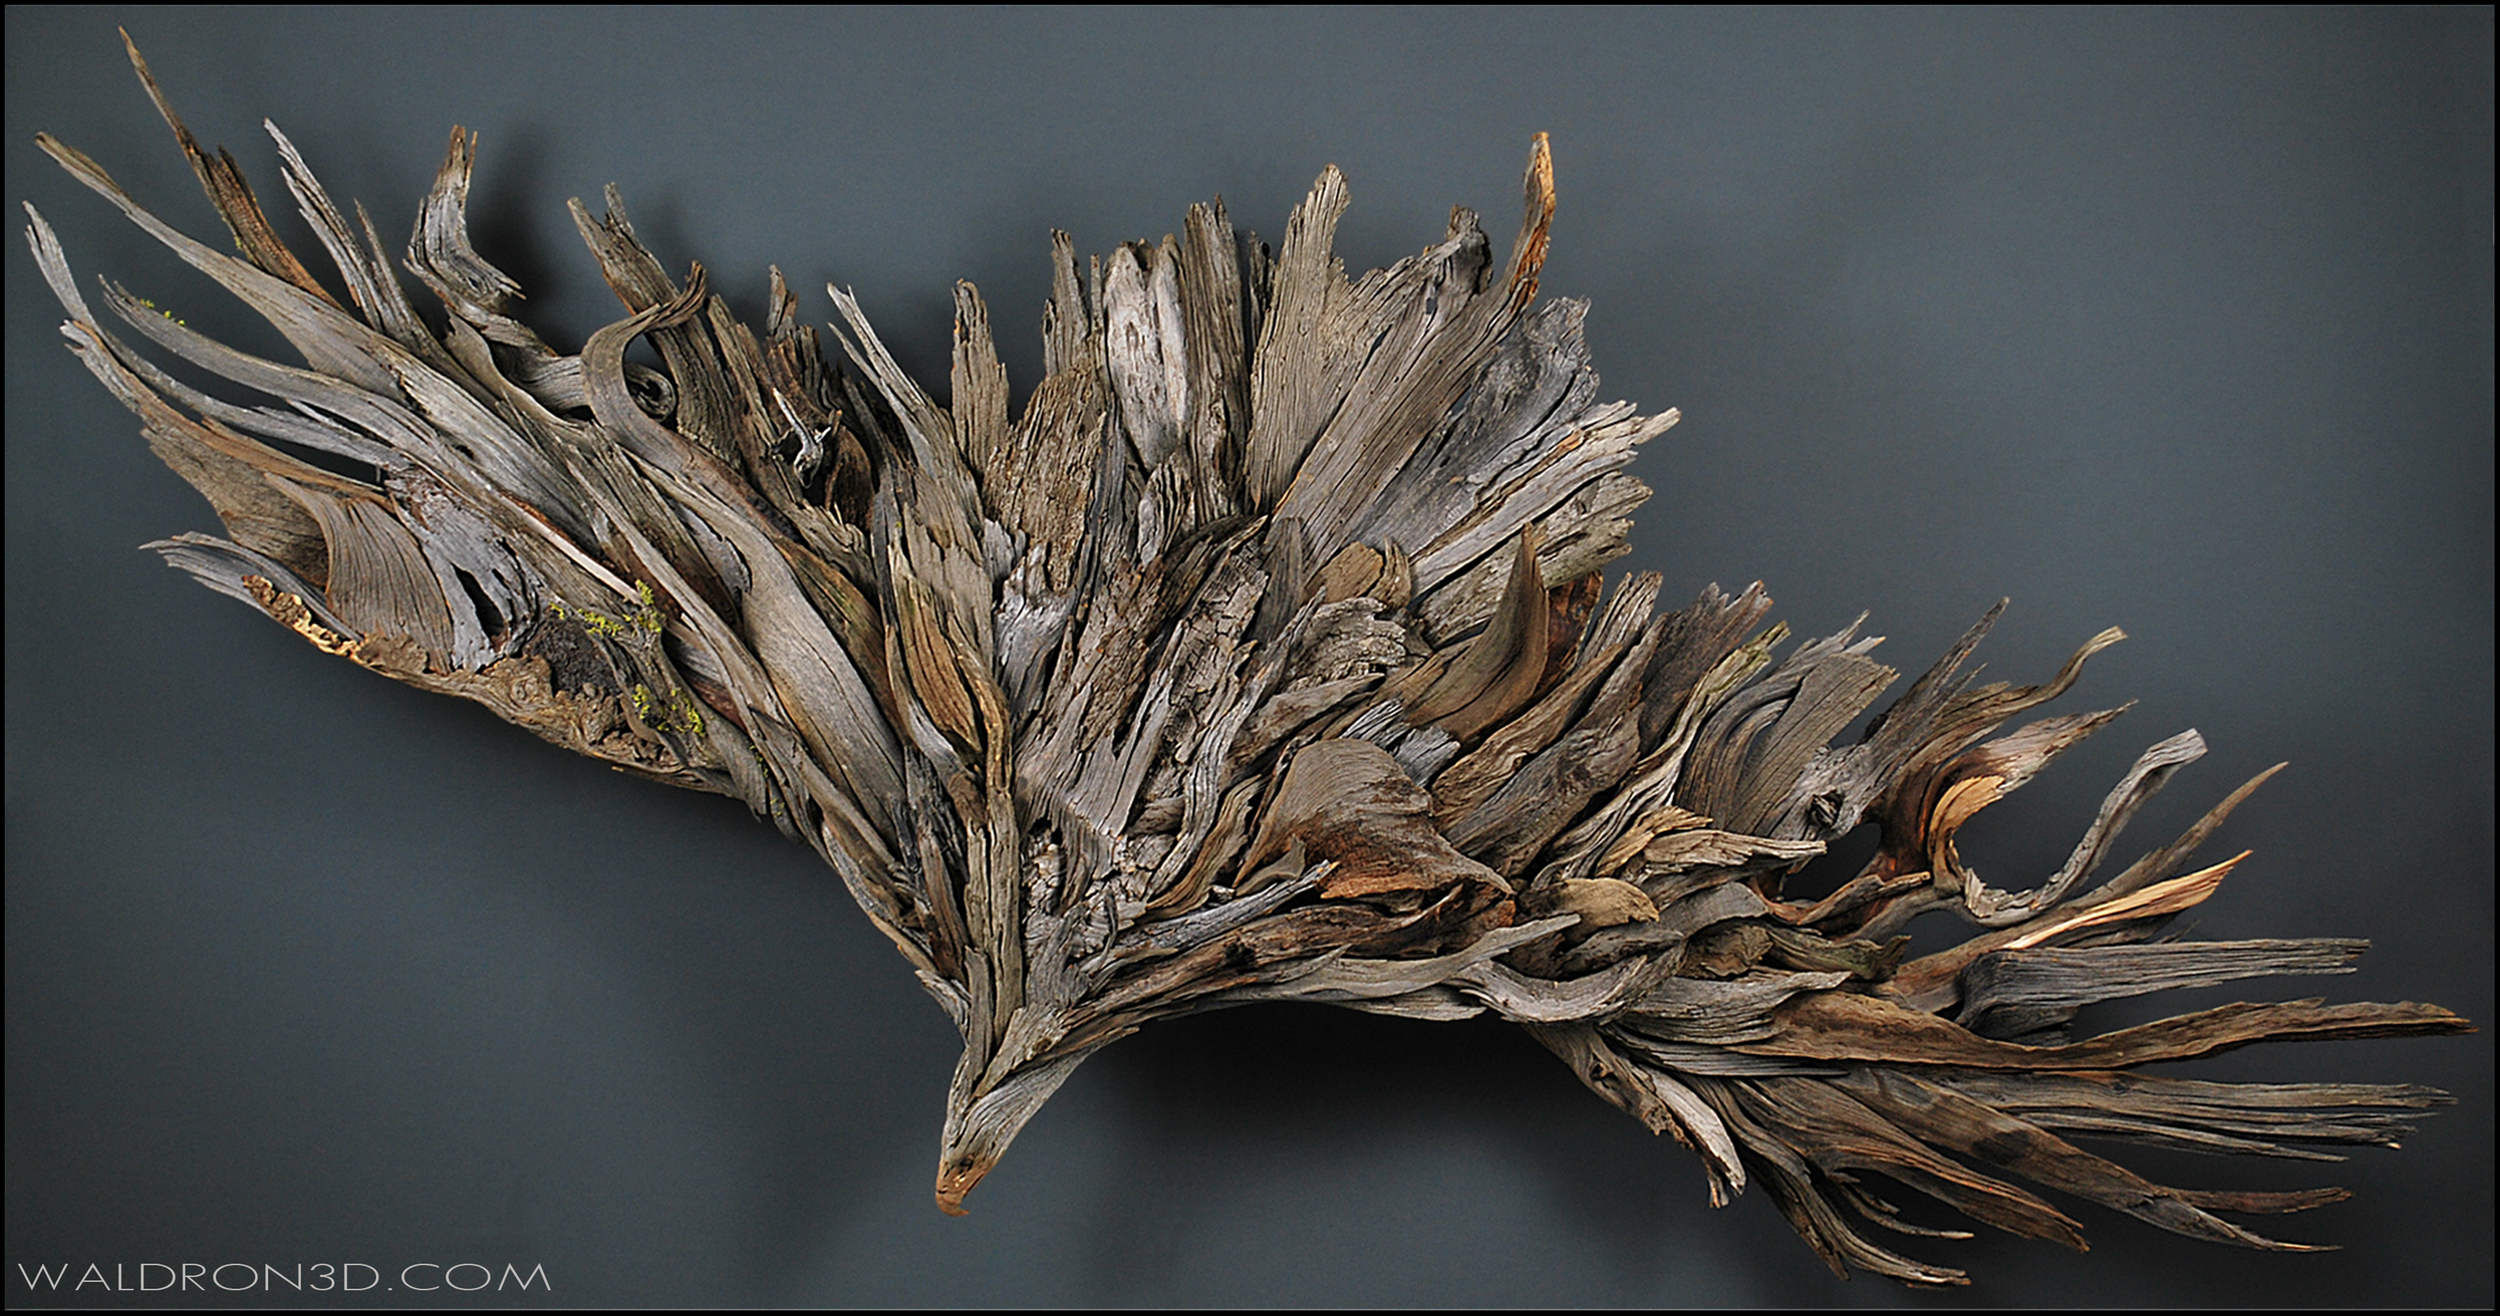 || BOUNDLESS || WALDRON 3D SCULPTURAL EXPRESSIONS - CONSTRUCTED FROM FORAGED, WEATHERED PIECES OF HIGH DESERT WOOD.